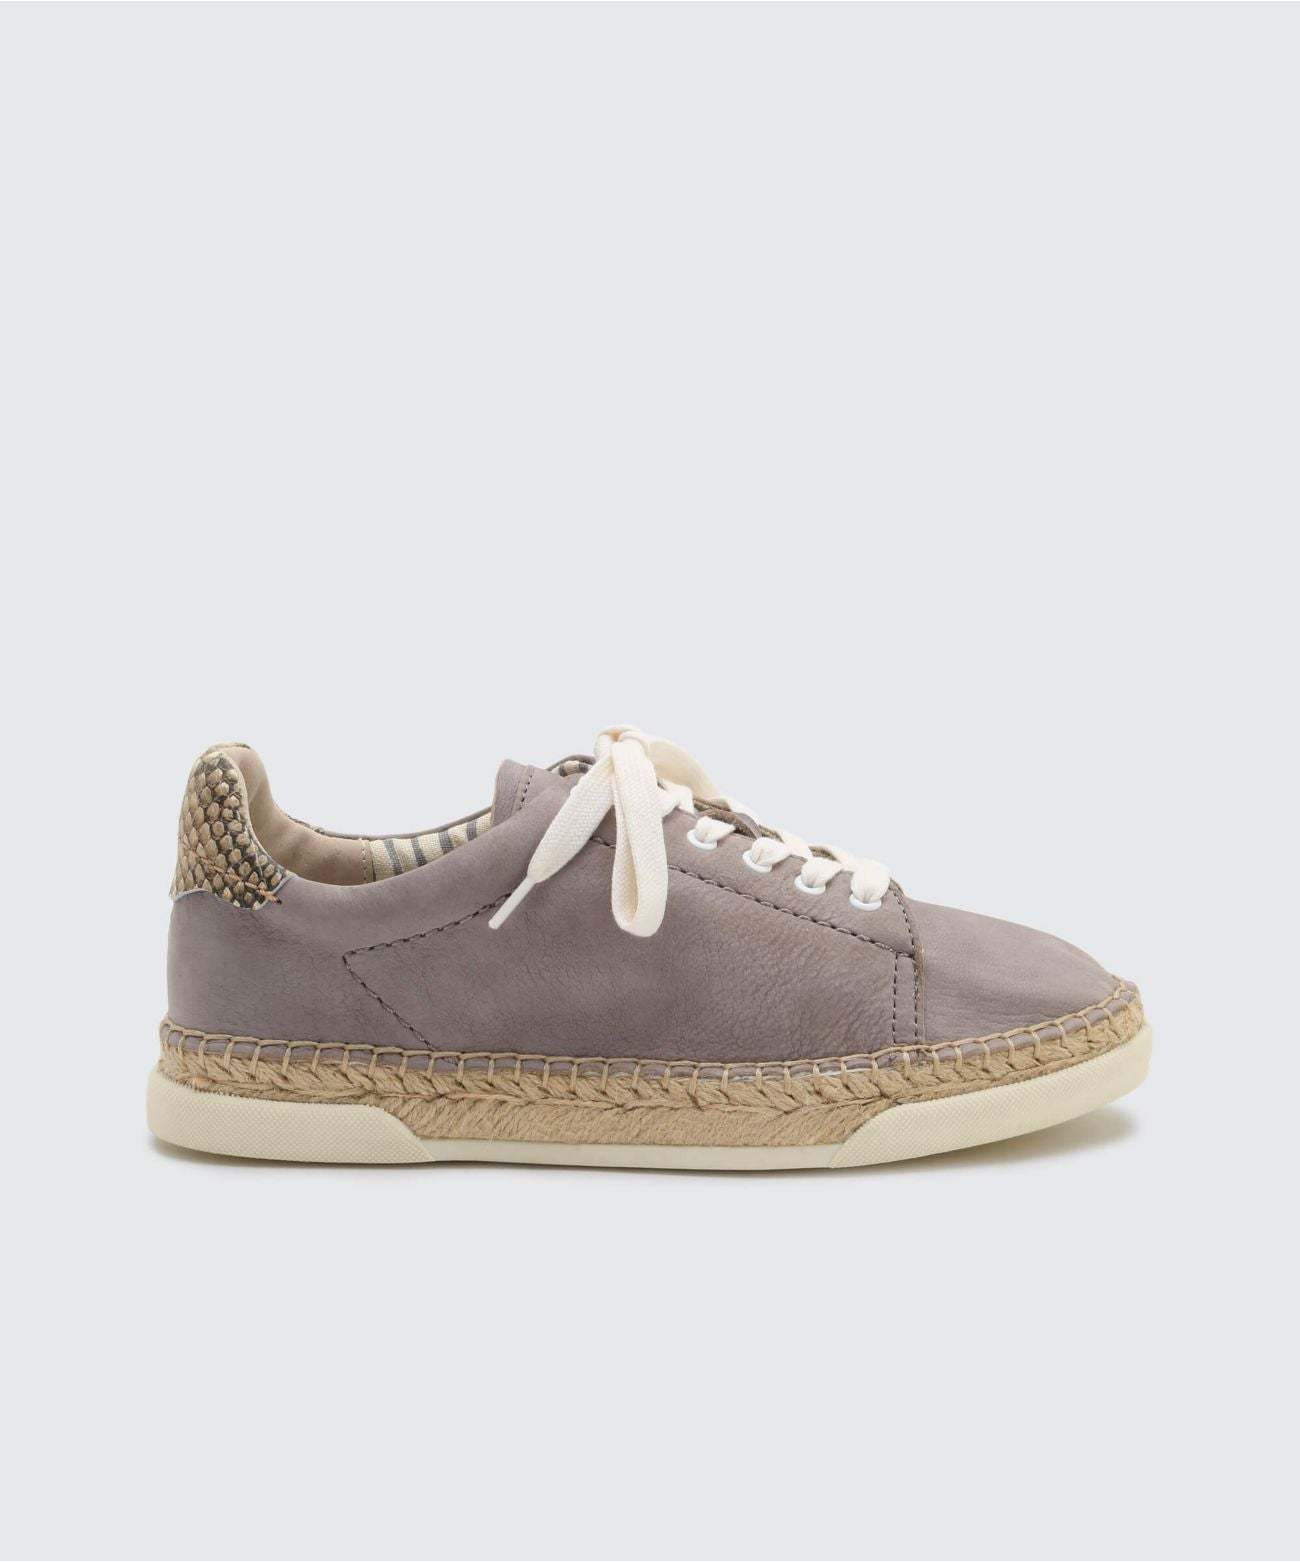 MADOX SNEAKERS IN GREY – Dolce Vita